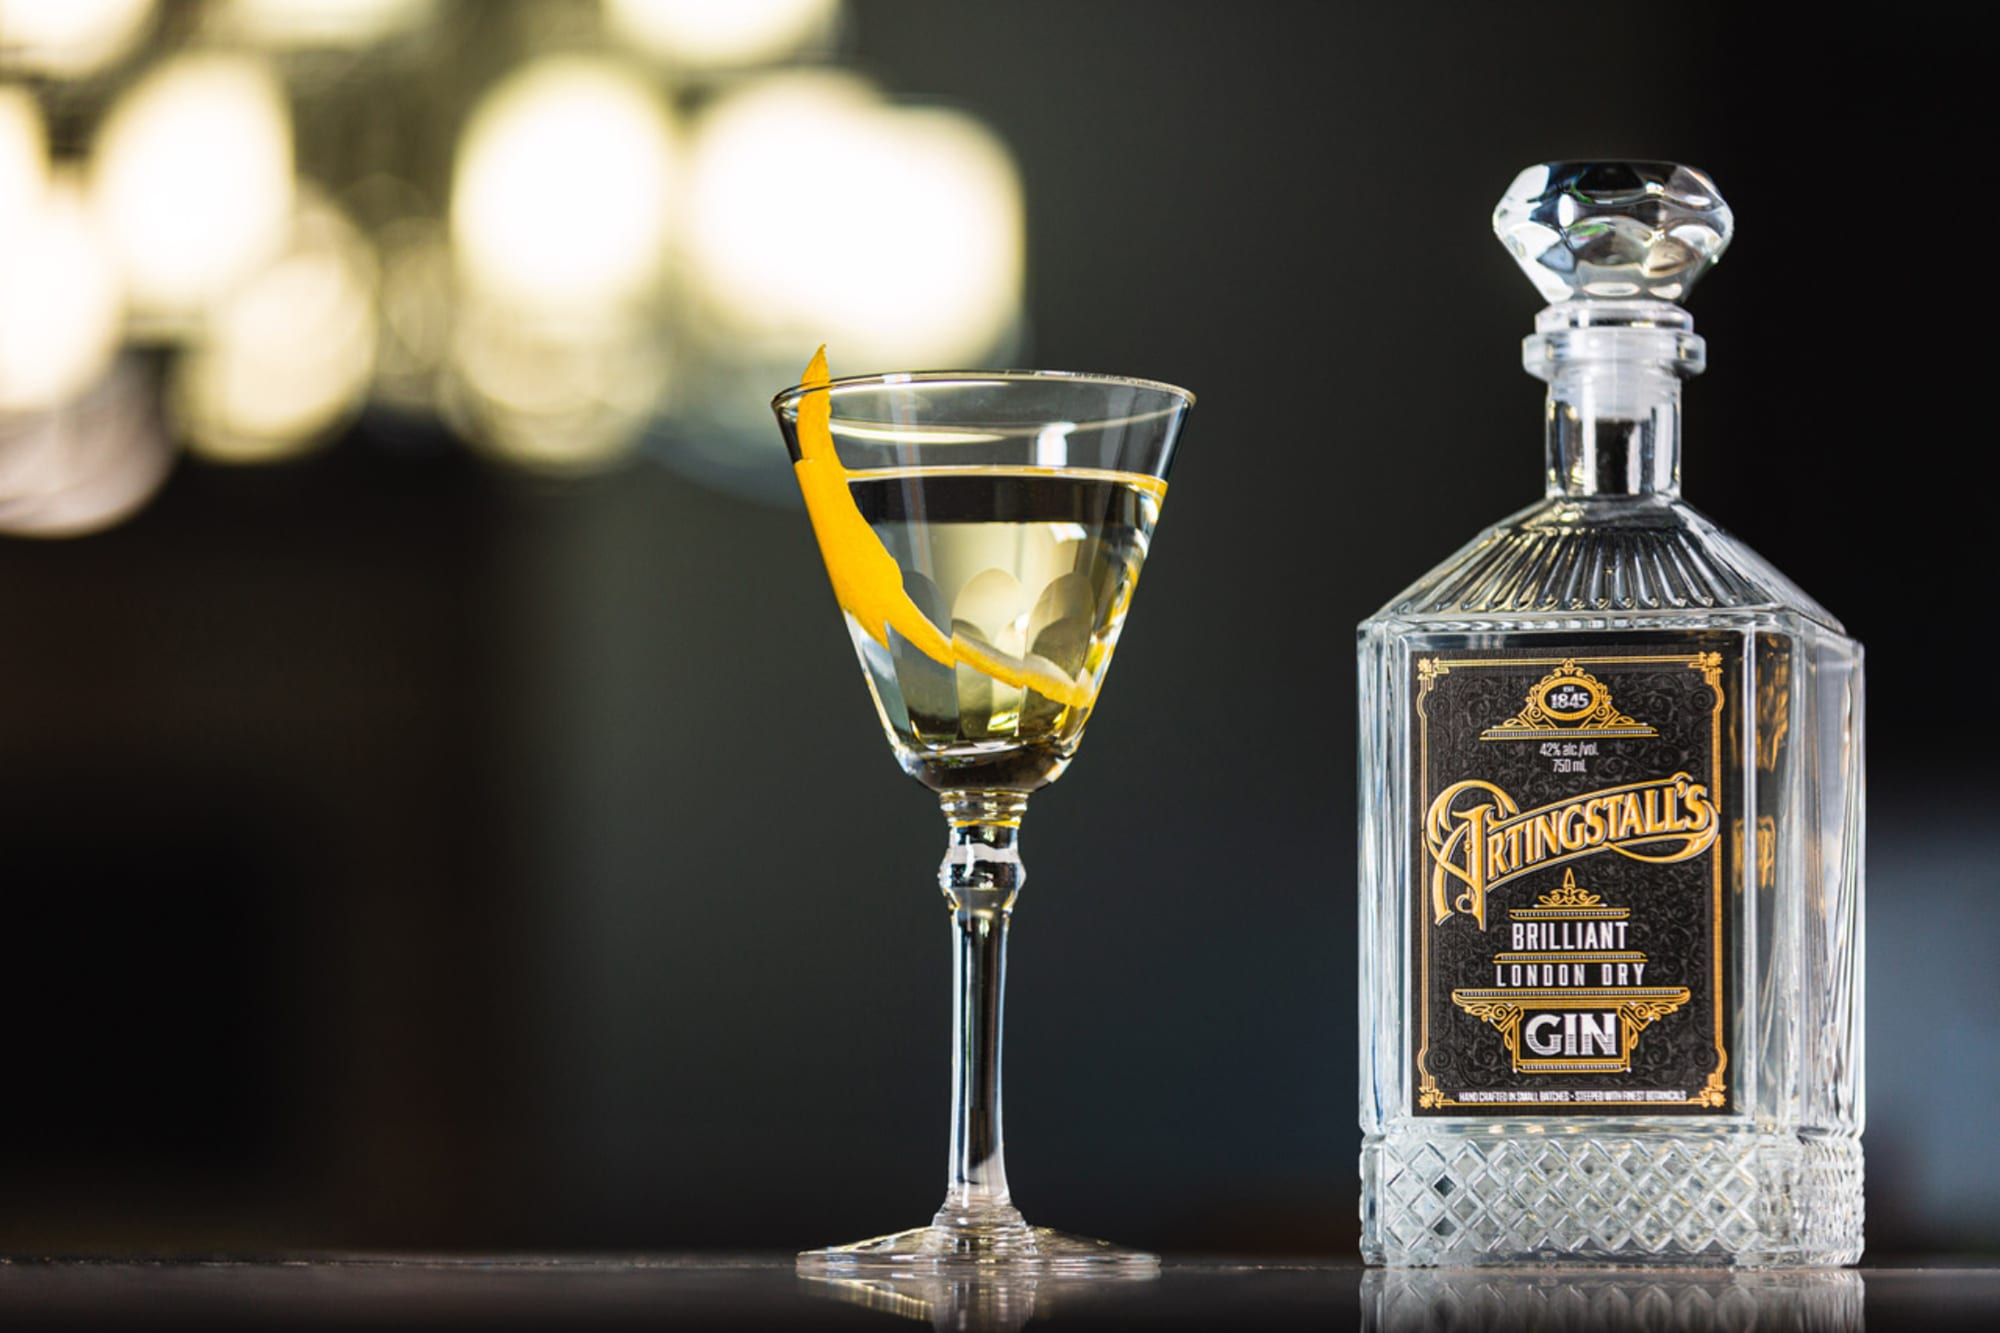 Modern gin invites drinkers to discover a new approach to the traditional spirit